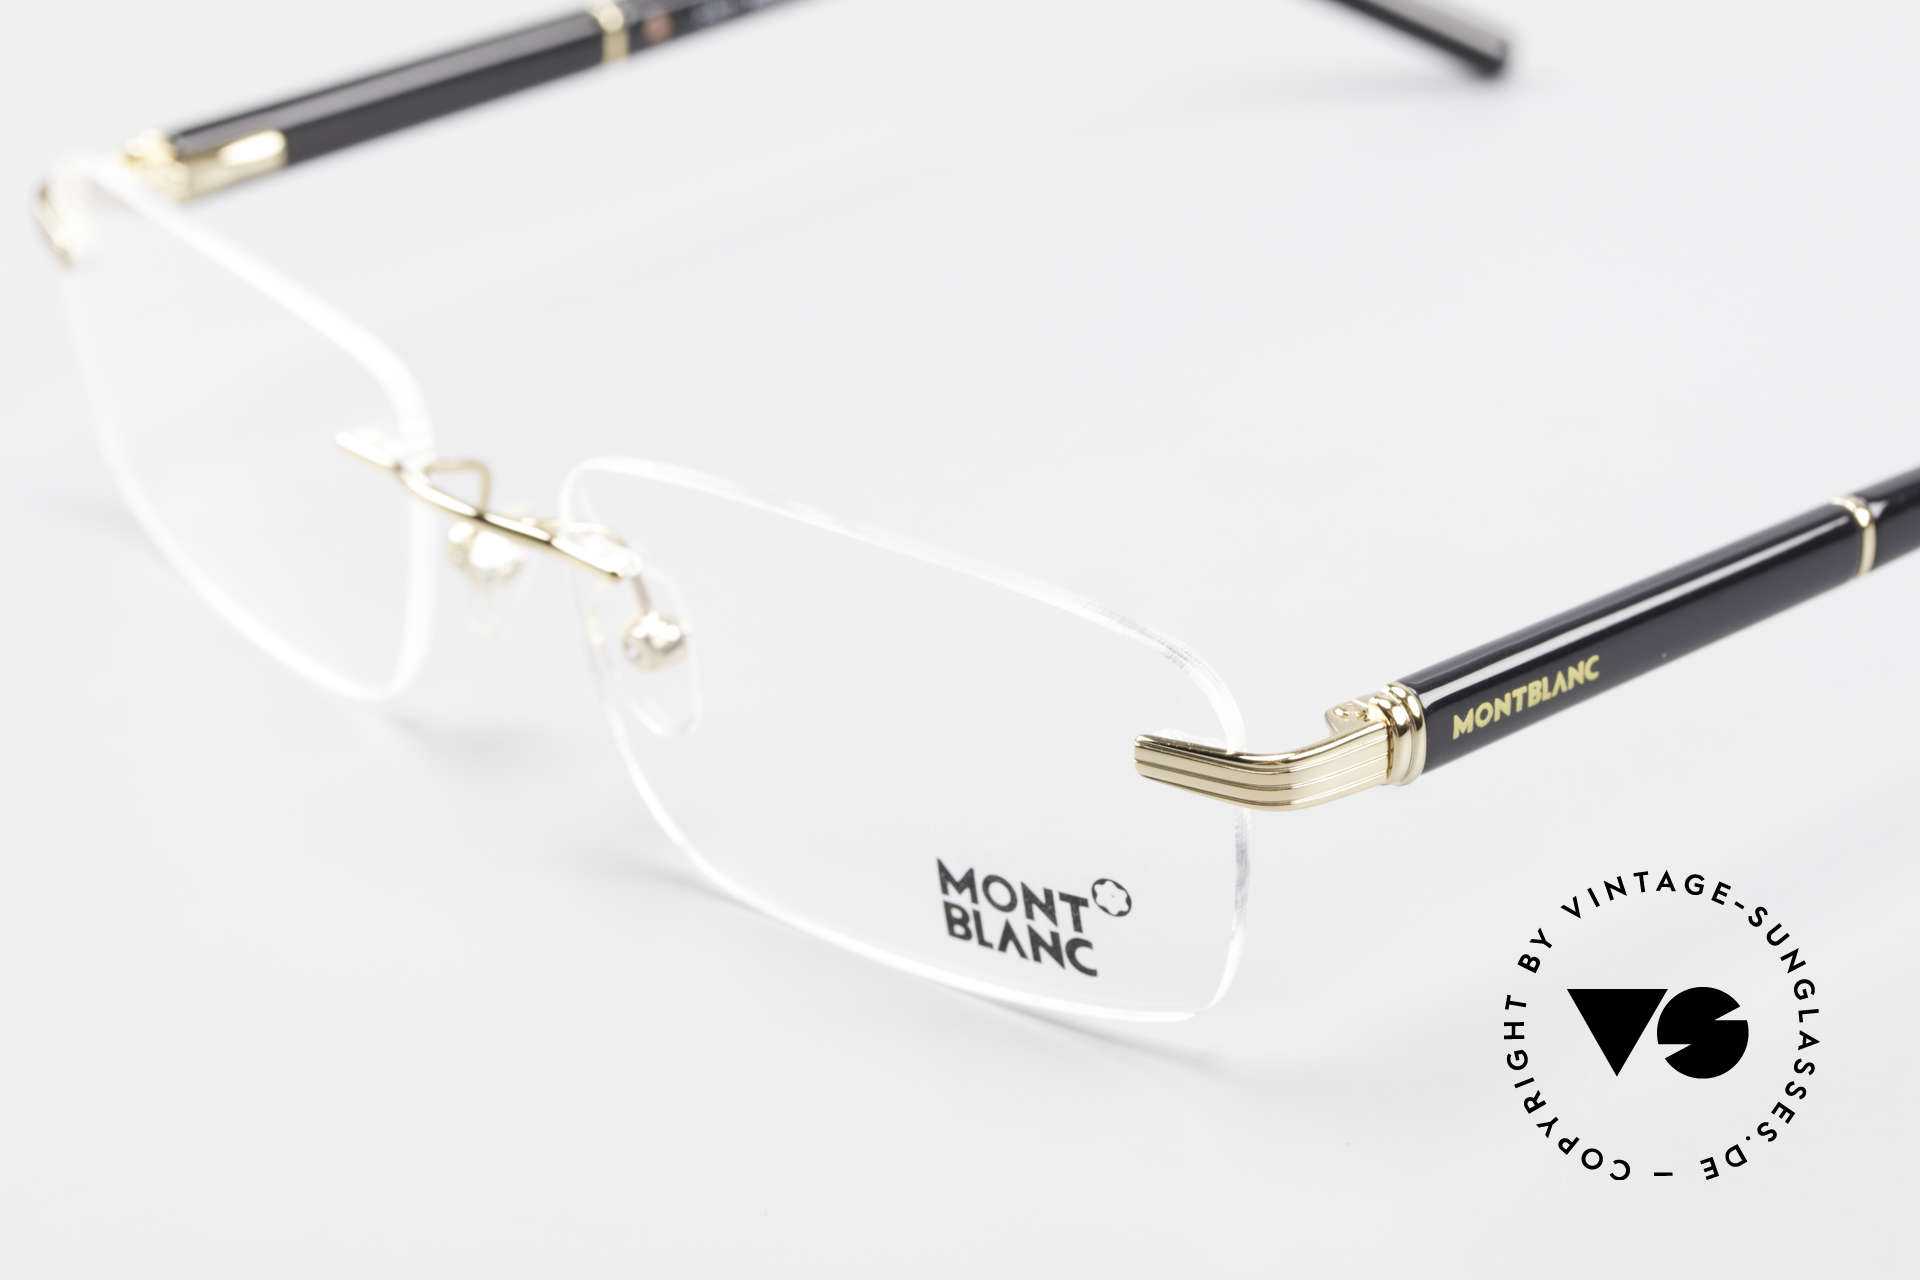 Montblanc MB337 Rimless Eyeglasses Gold-Plated, Size: medium, Made for Men